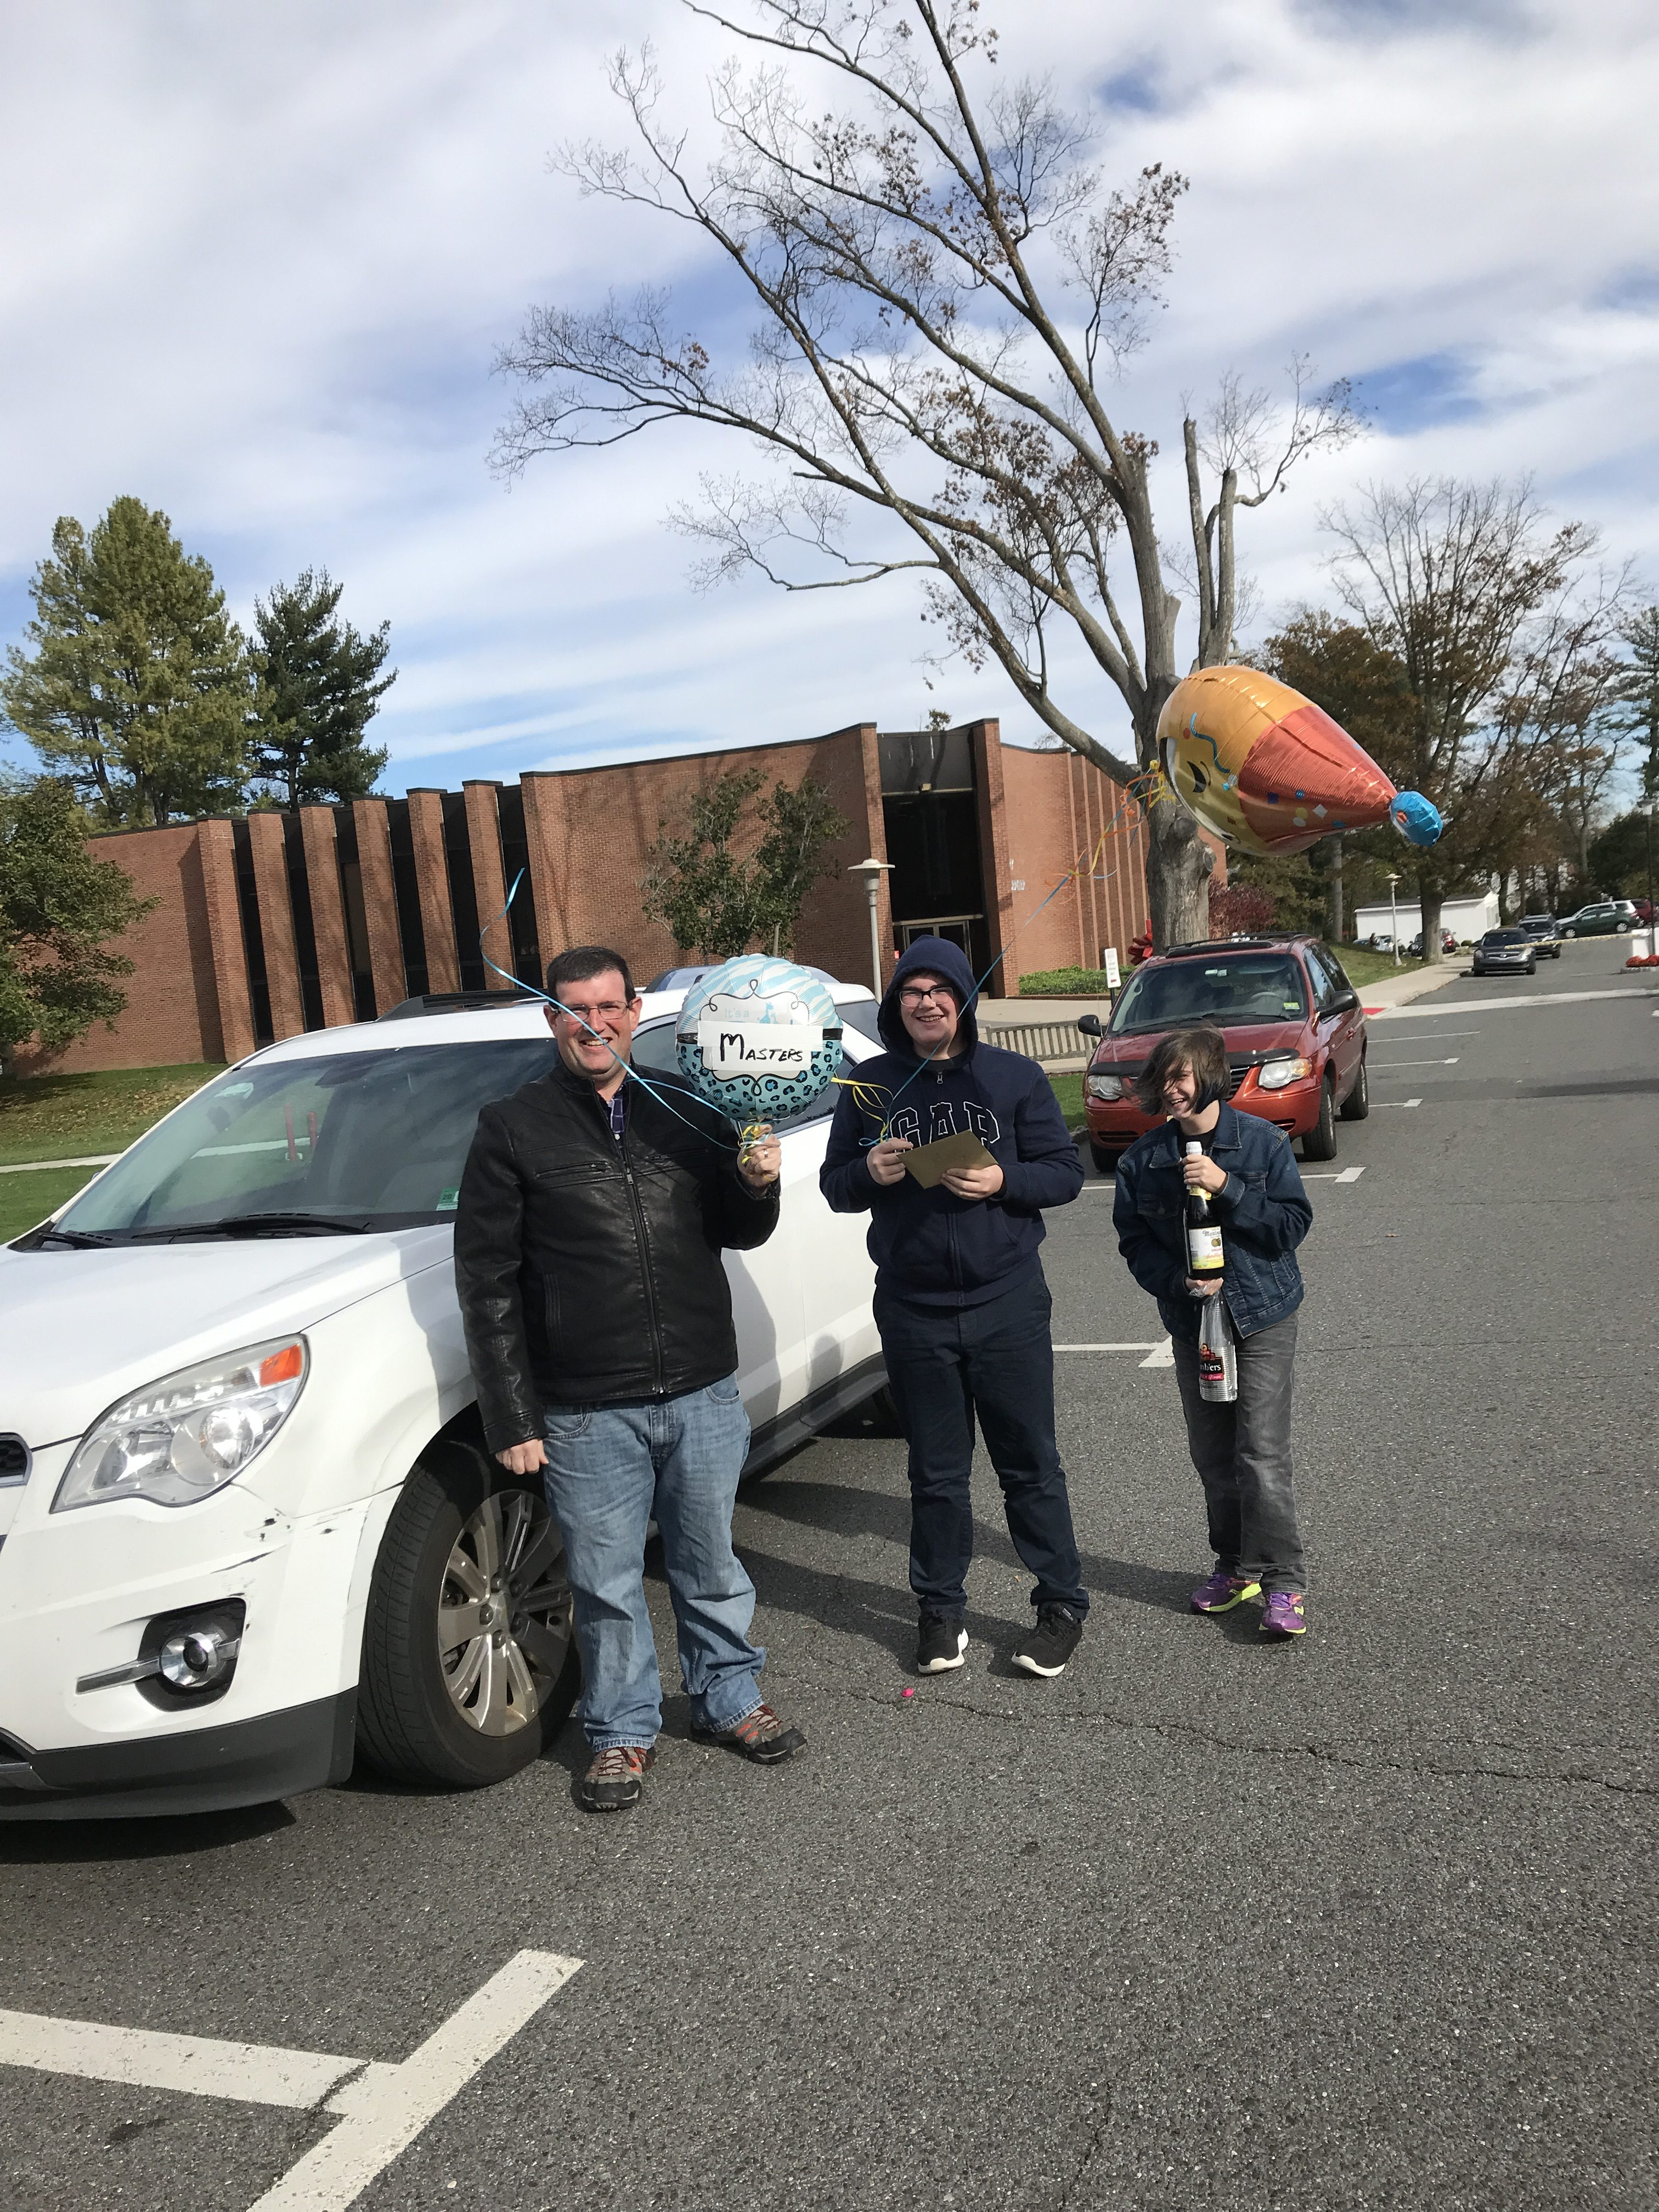 author's husband and two children waiting outside for her with balloons